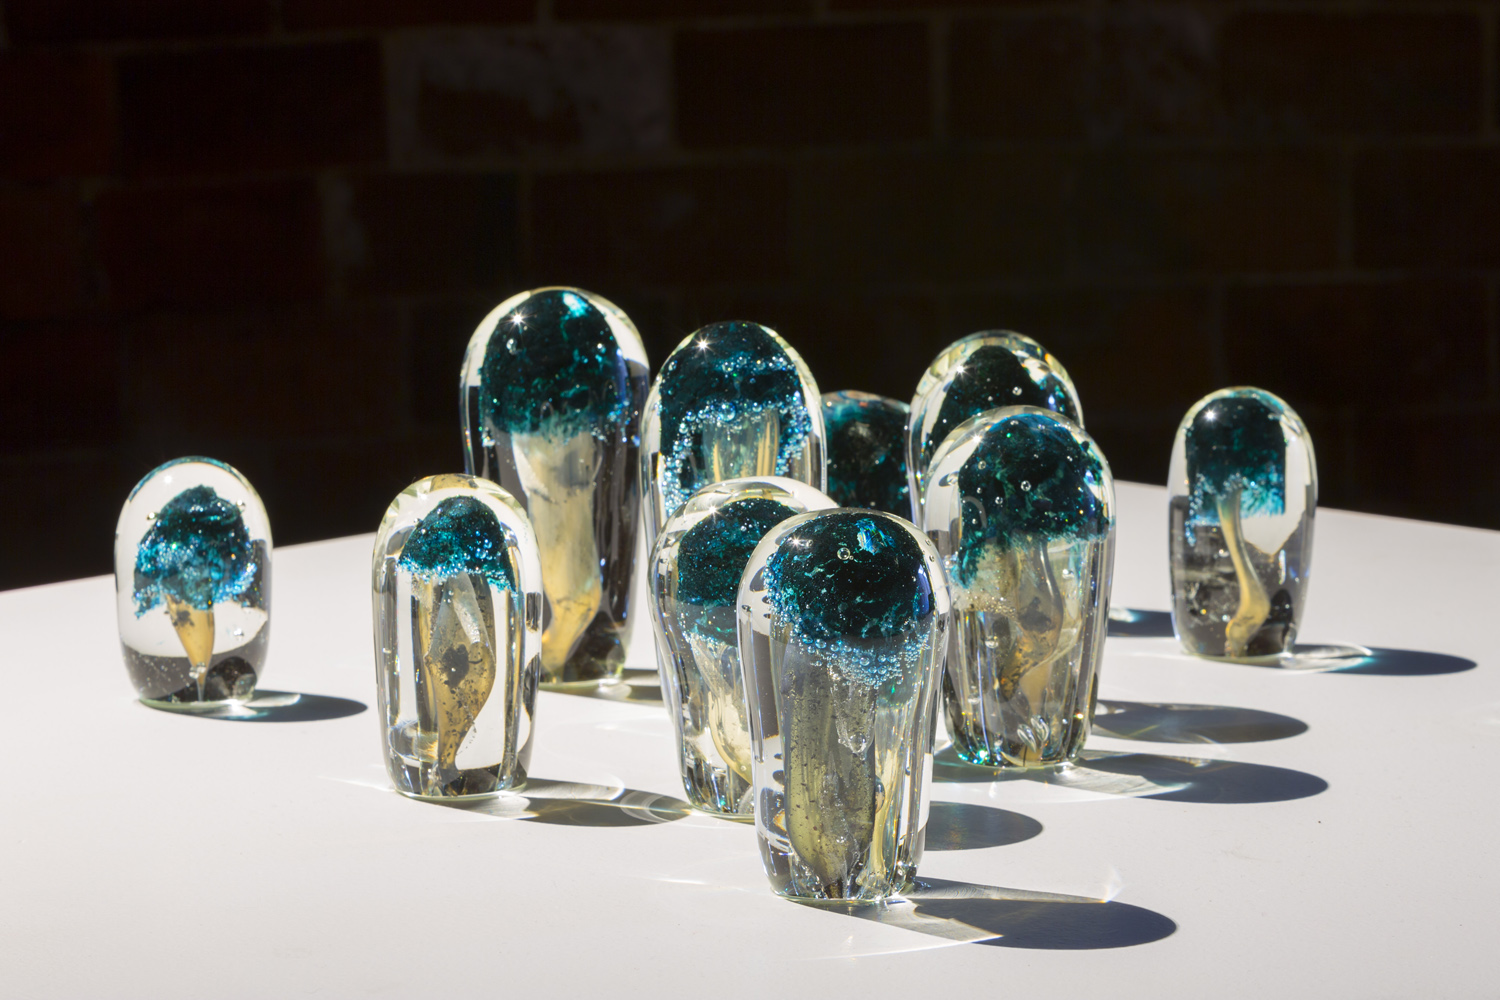 Collaboration with Emilie Patteson, Mushrooms, hot-sculpted glass with mushroom and copper inclusions, 2014, (photo by Adam McGrath), Canberra Glassworks GLINT exhibition install